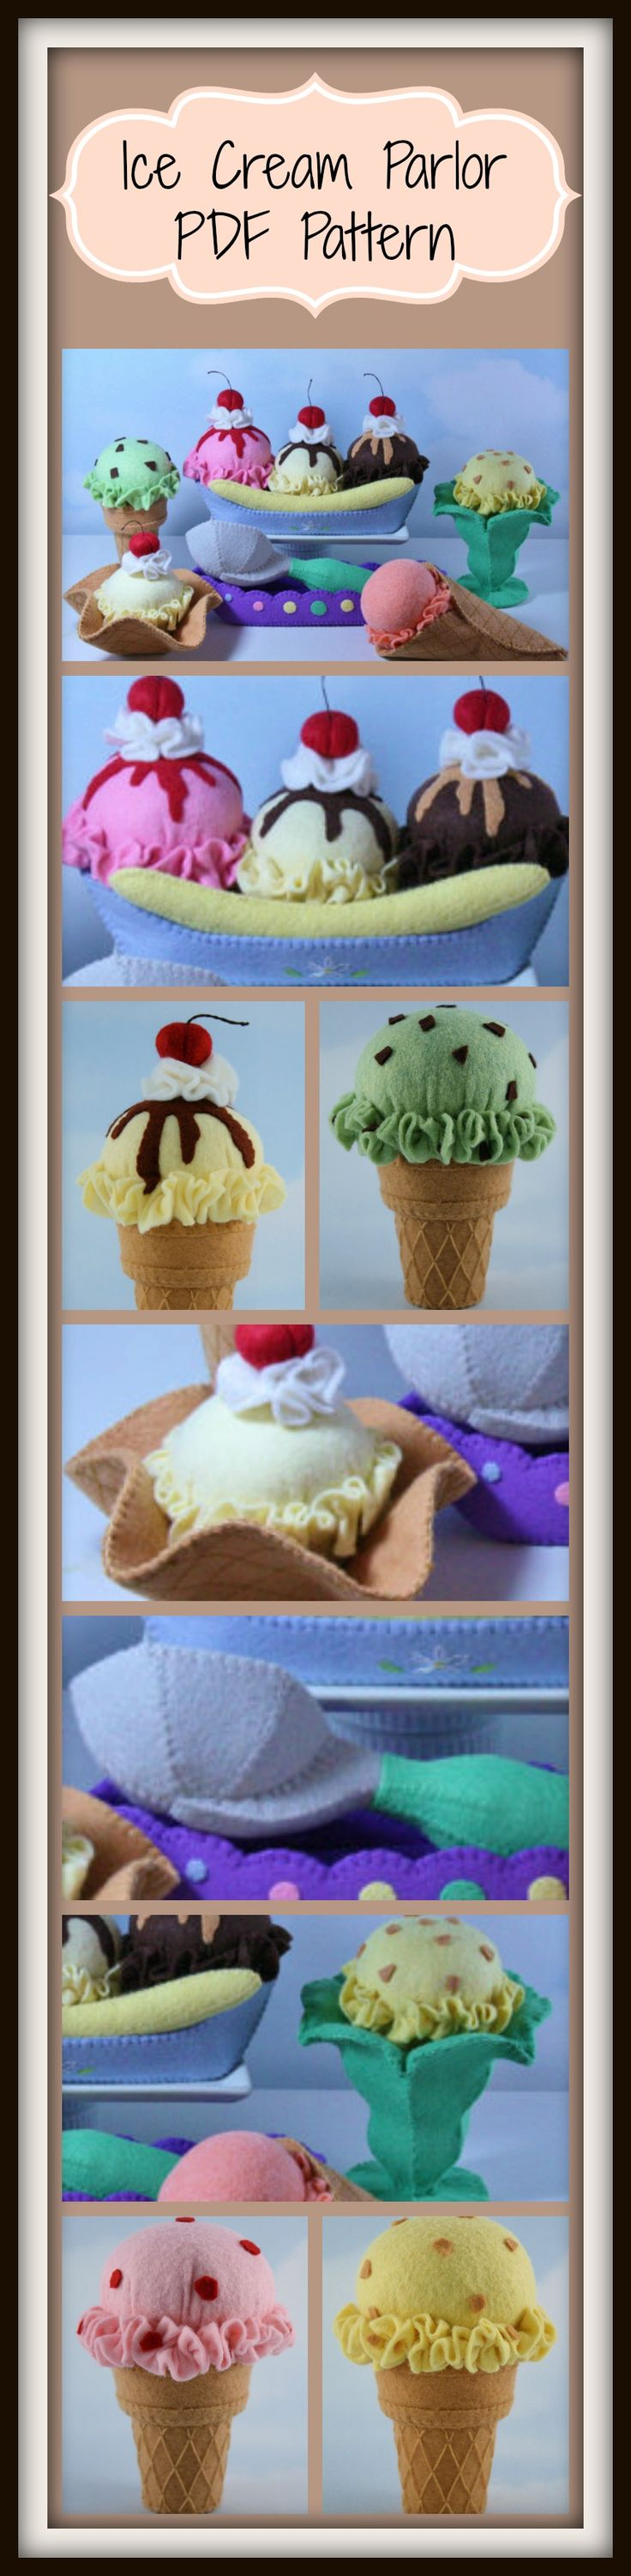 Ice Cream Parlor Instant Download PDF Pattern